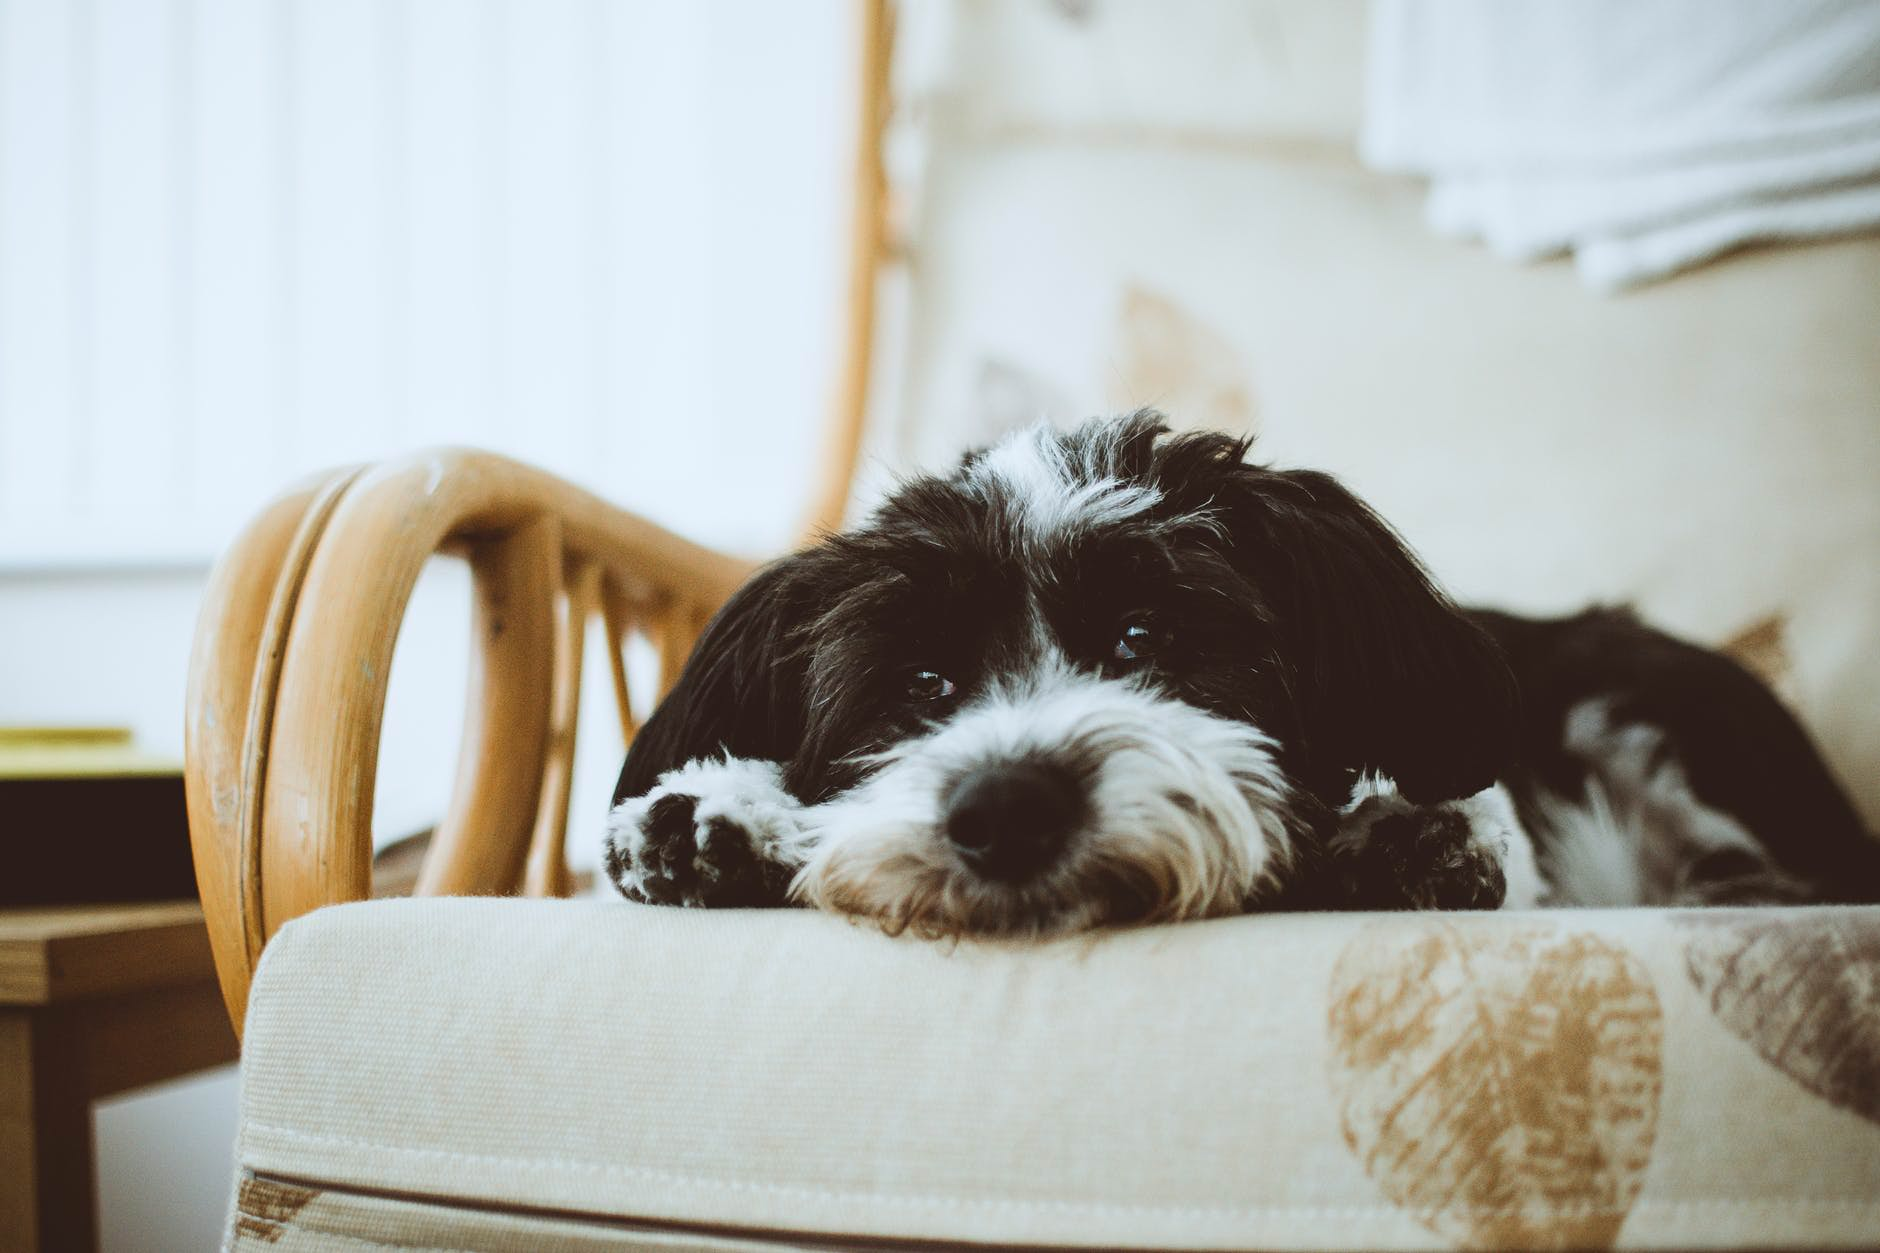 Impeccable Ways Dog Fleas Can Impact On A Health How Often Should I Treat My Dog Skin Problems Itchy Skin How Often Should You Ba A Dog How Often Should You Ba A Dog bark post How Often Should You Bathe A Dog